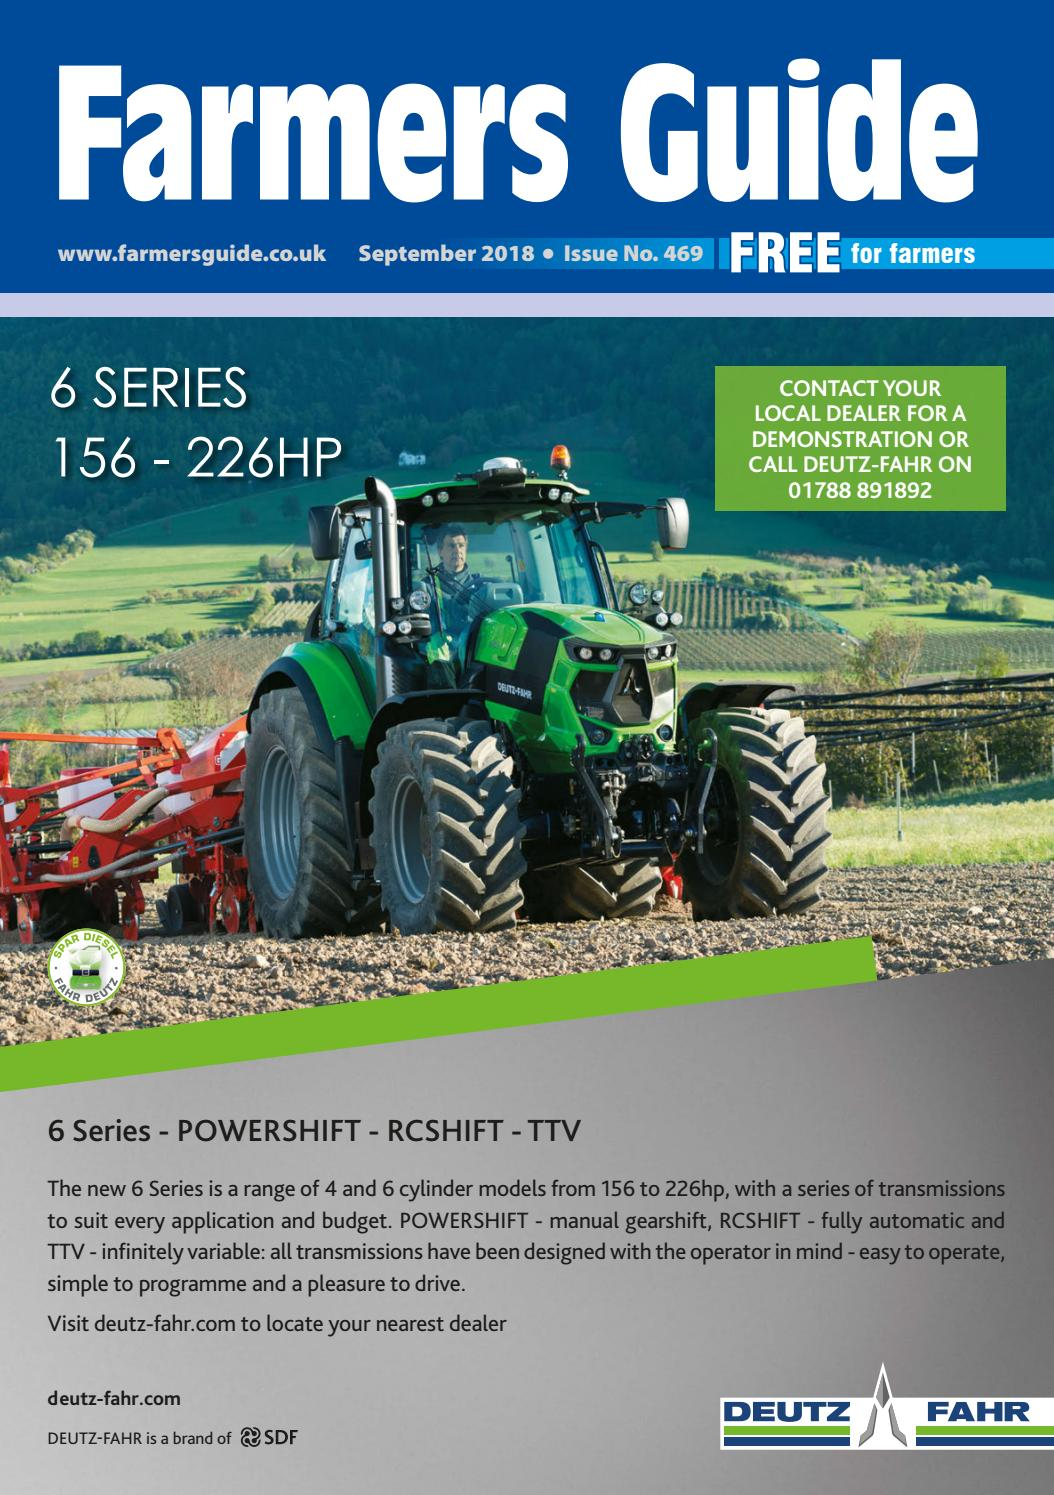 dd54b17aac0 Farmers Guide September 2018 by Farmers Guide - issuu